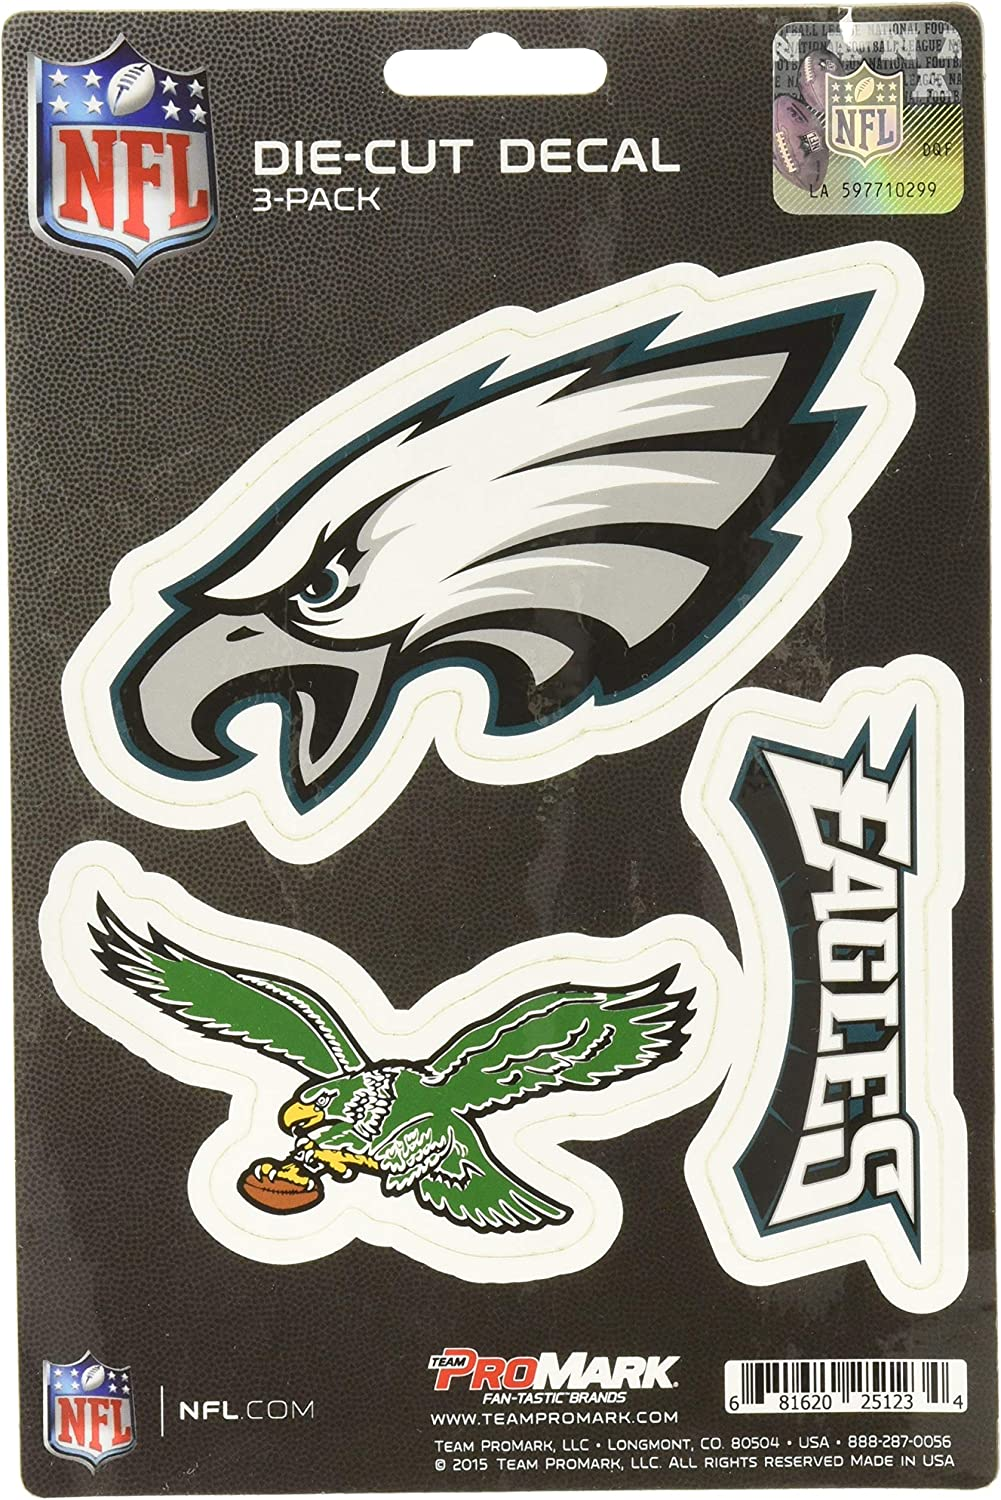 NFL Philadelphia Eagles Team Decal, 3-Pack